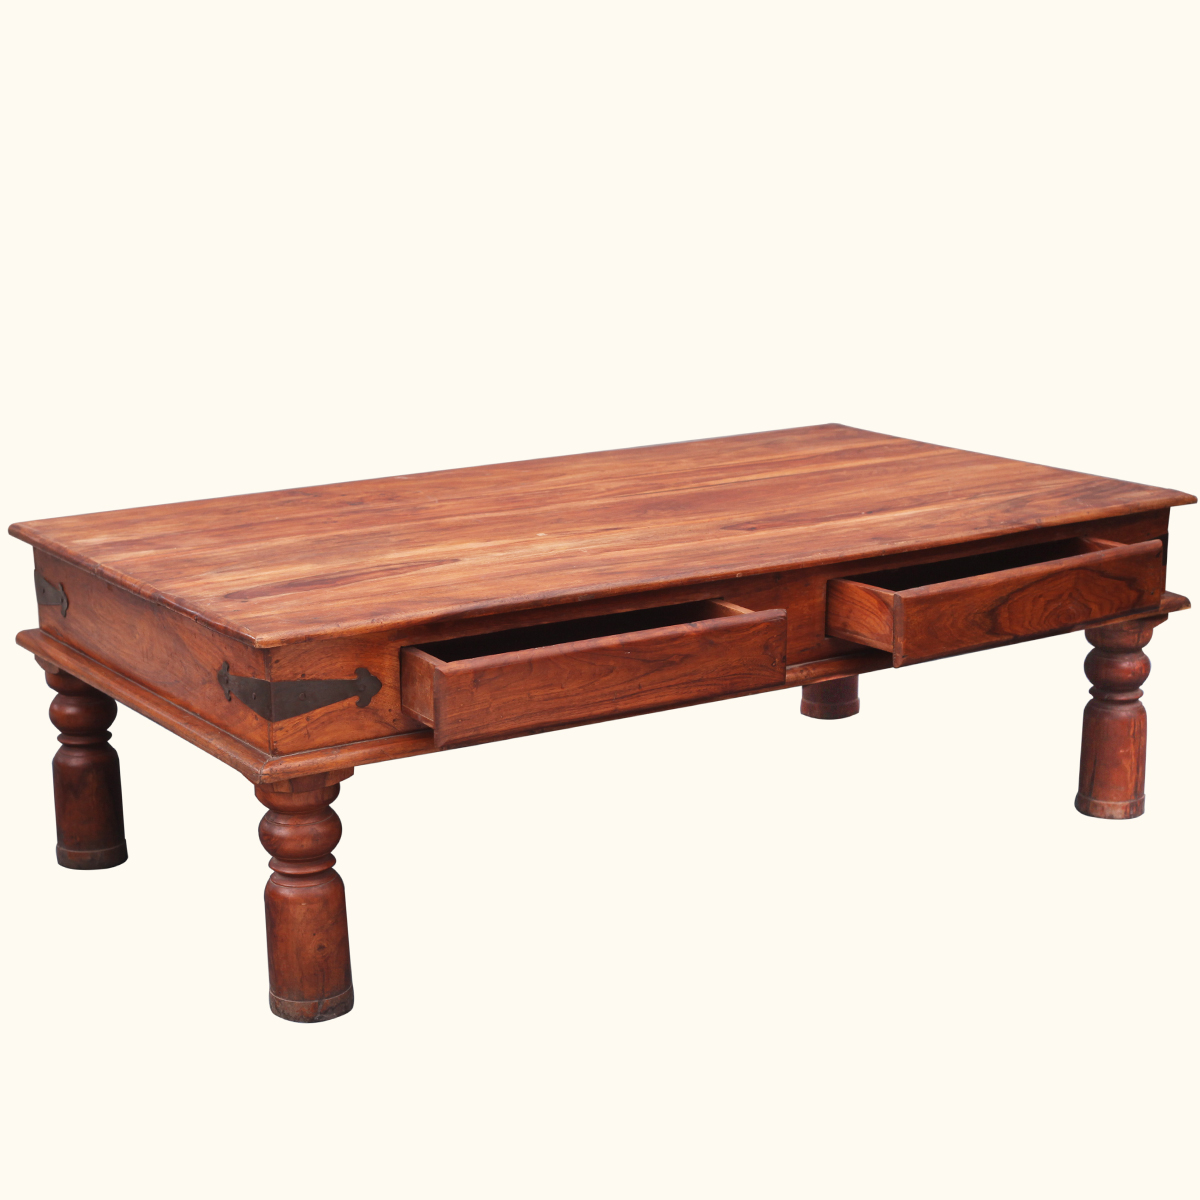 Coffee Table With Storage Drawers Rustic Wood Cocktail Furniture Ebay